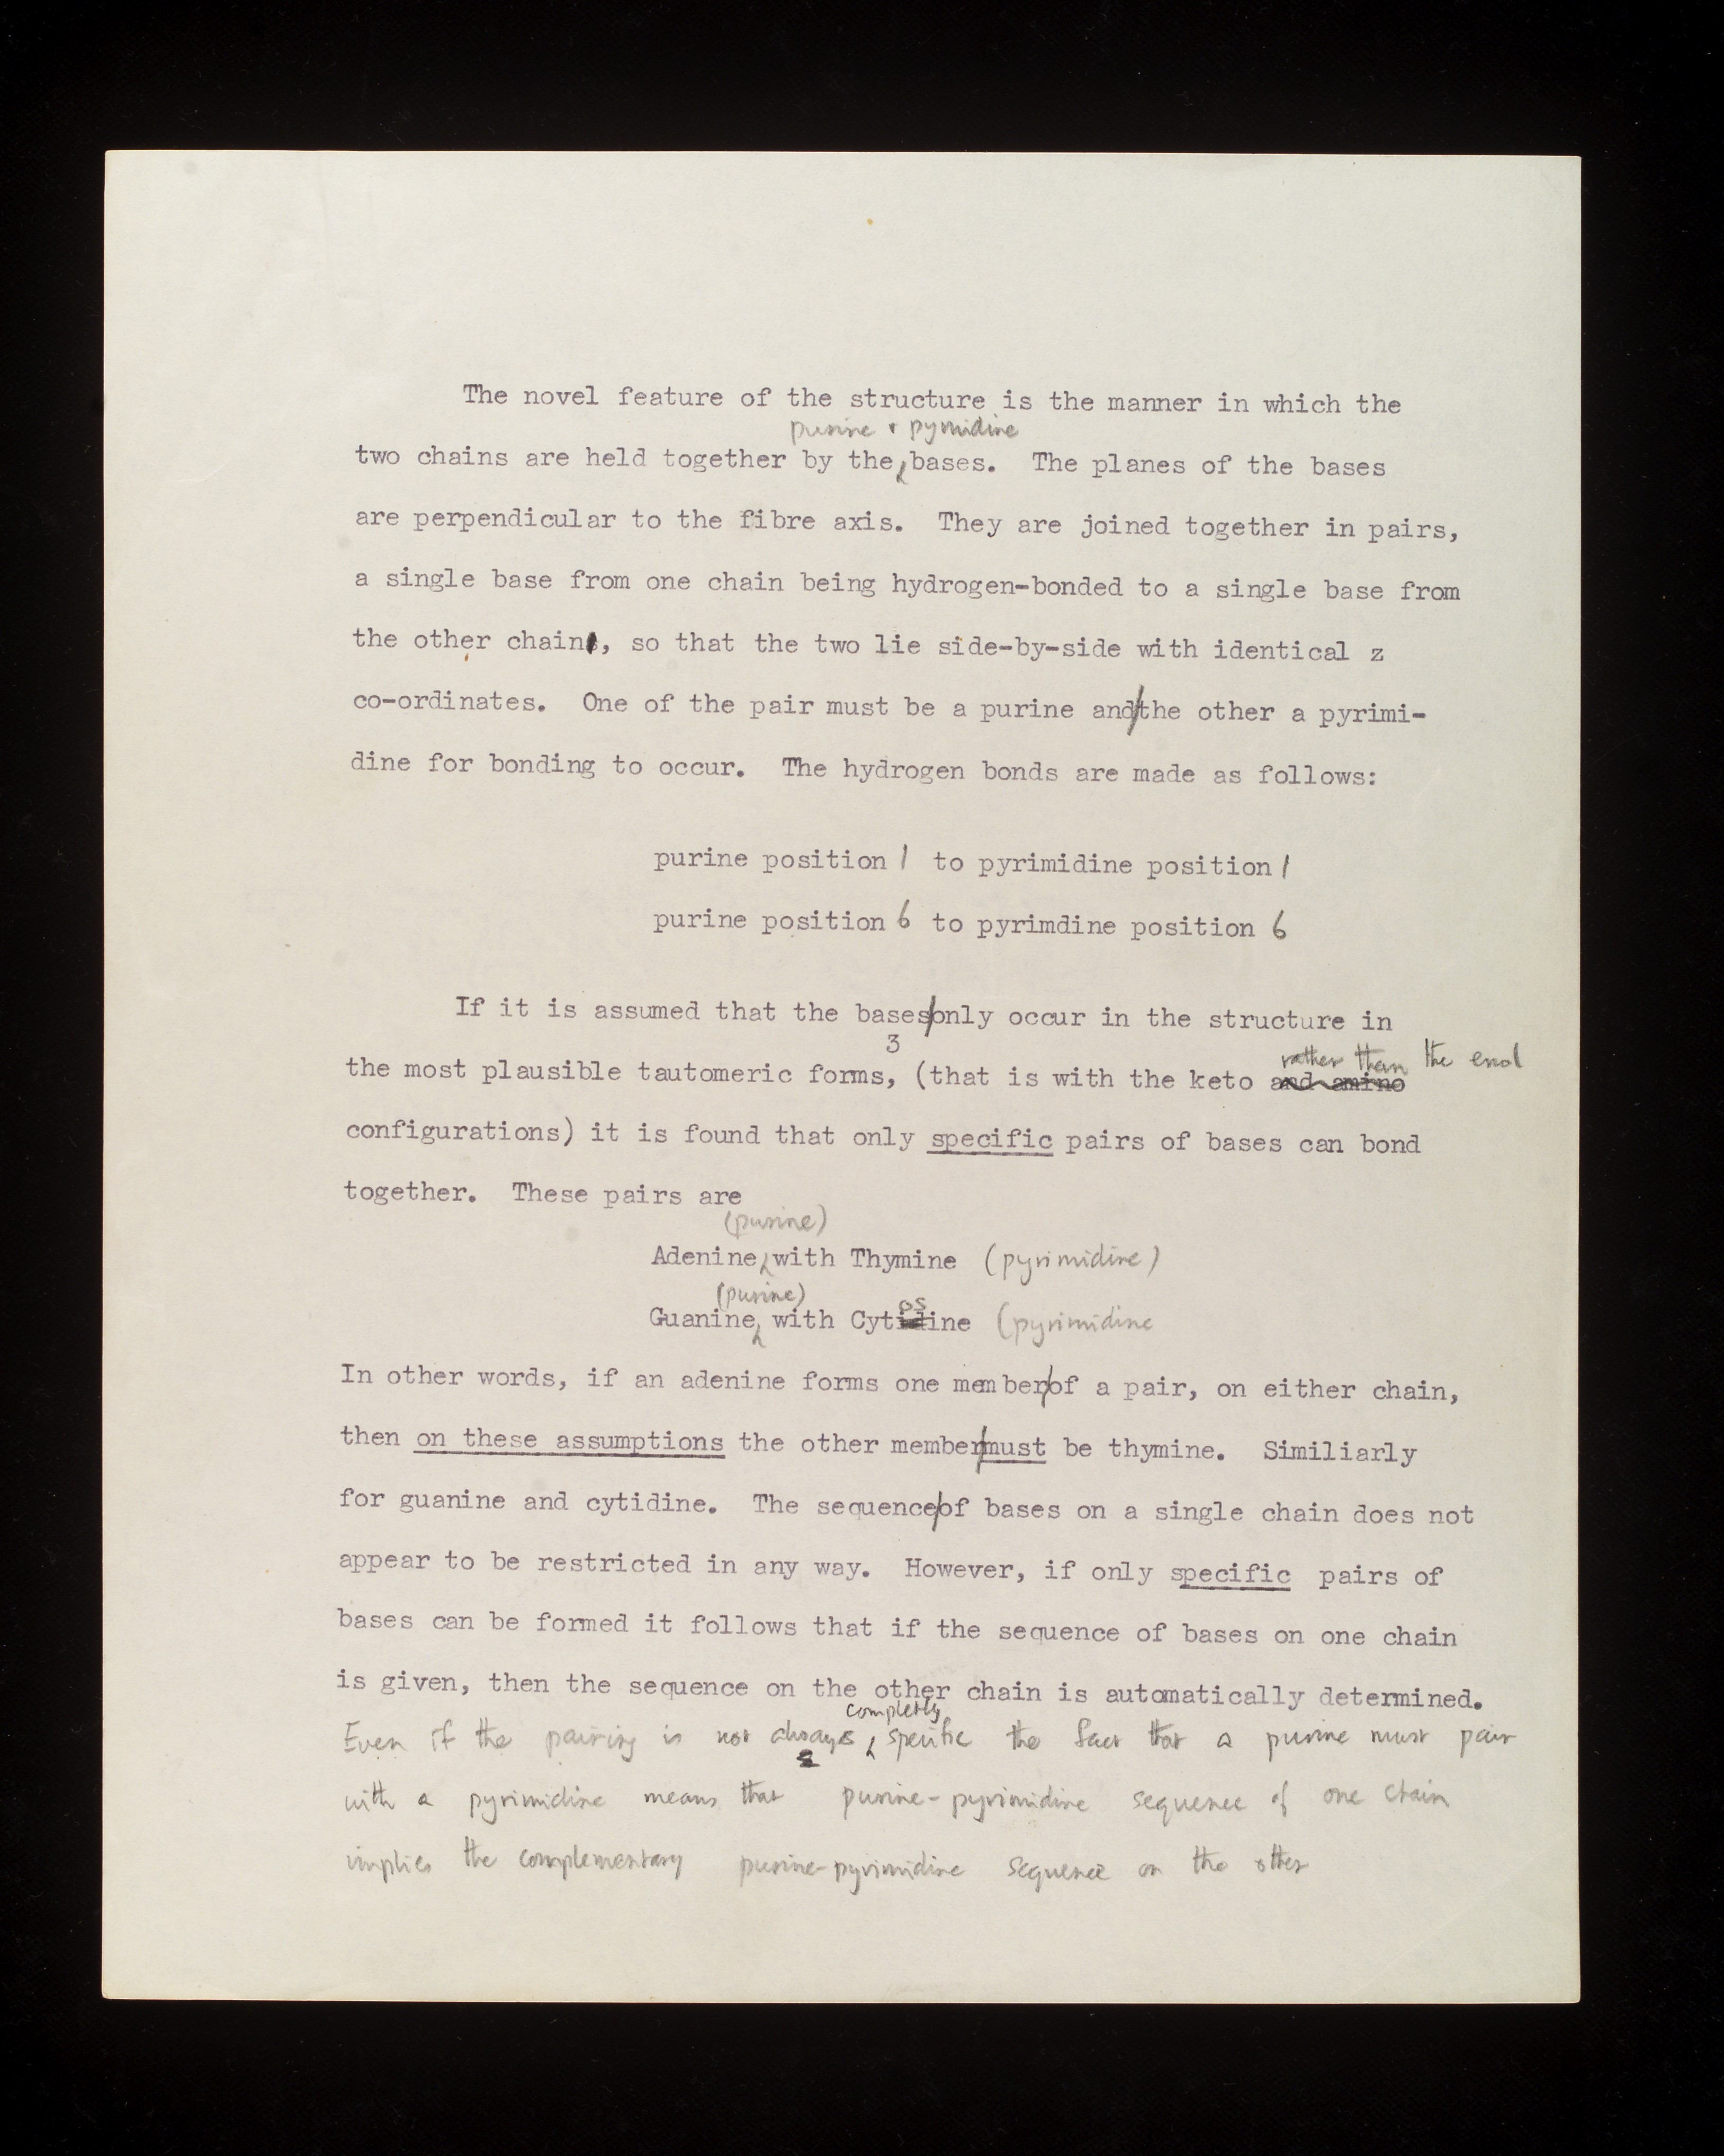 watson and crick essay example Get custom essay sample written according to your requirements  the work of rosalind franklin provided a key piece of data for watson and crick's model of dna .